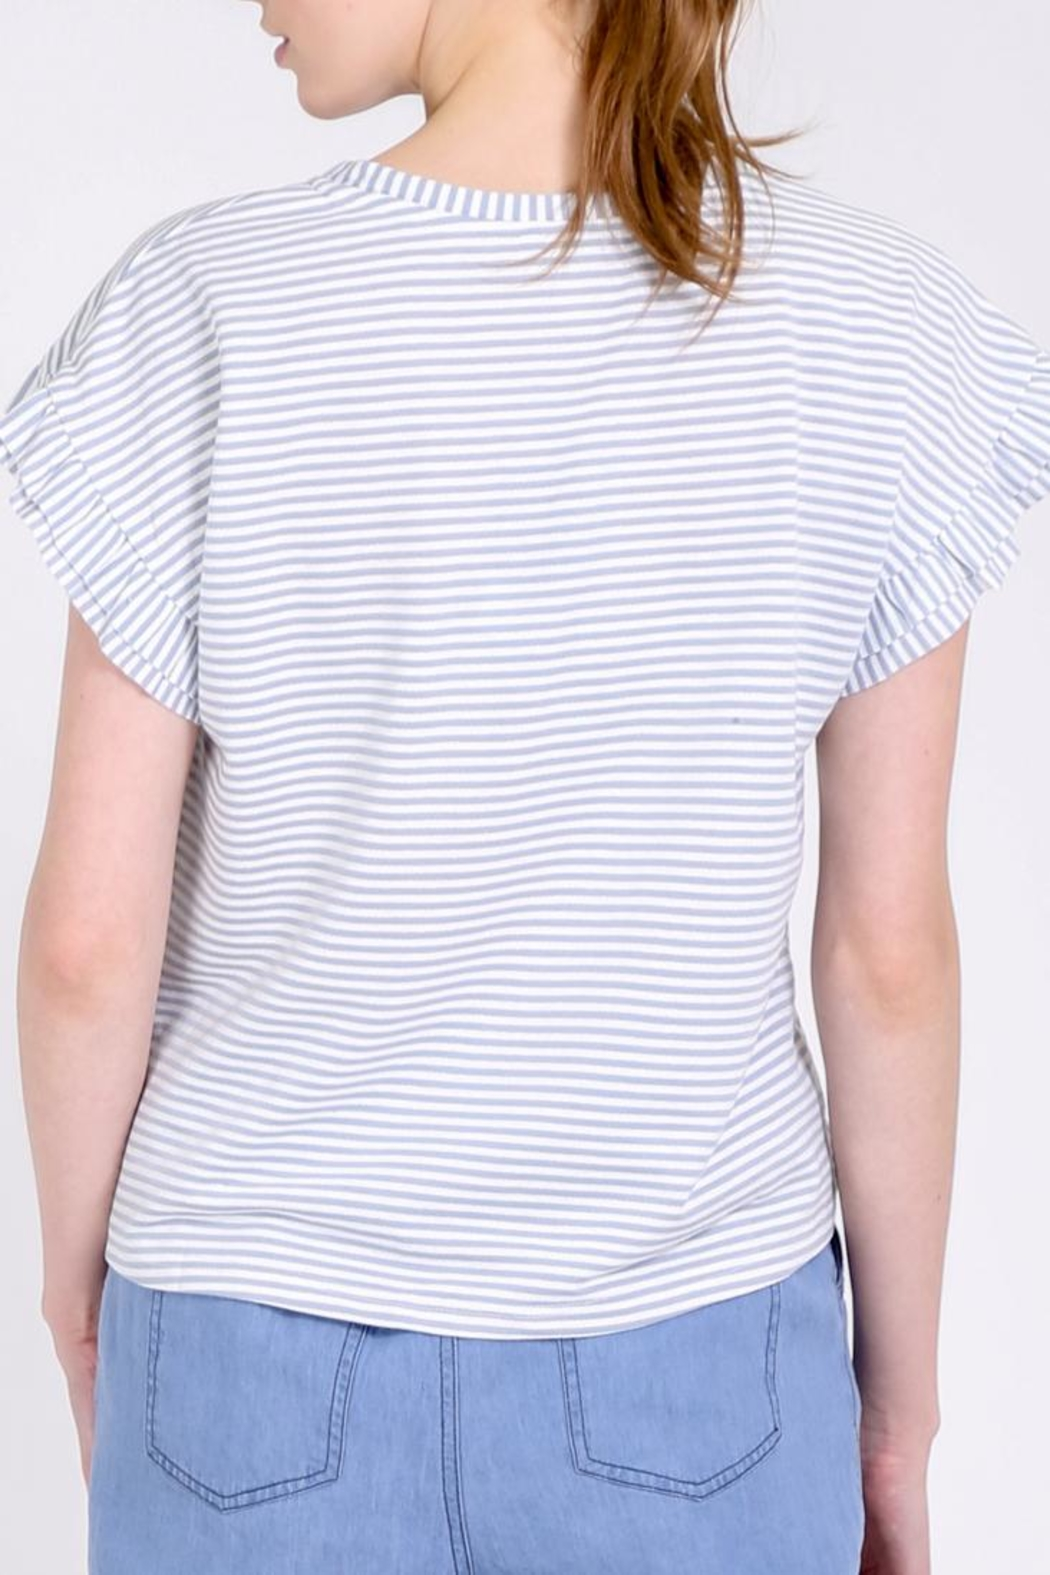 Movint Ruffle Tee Shirt - Side Cropped Image